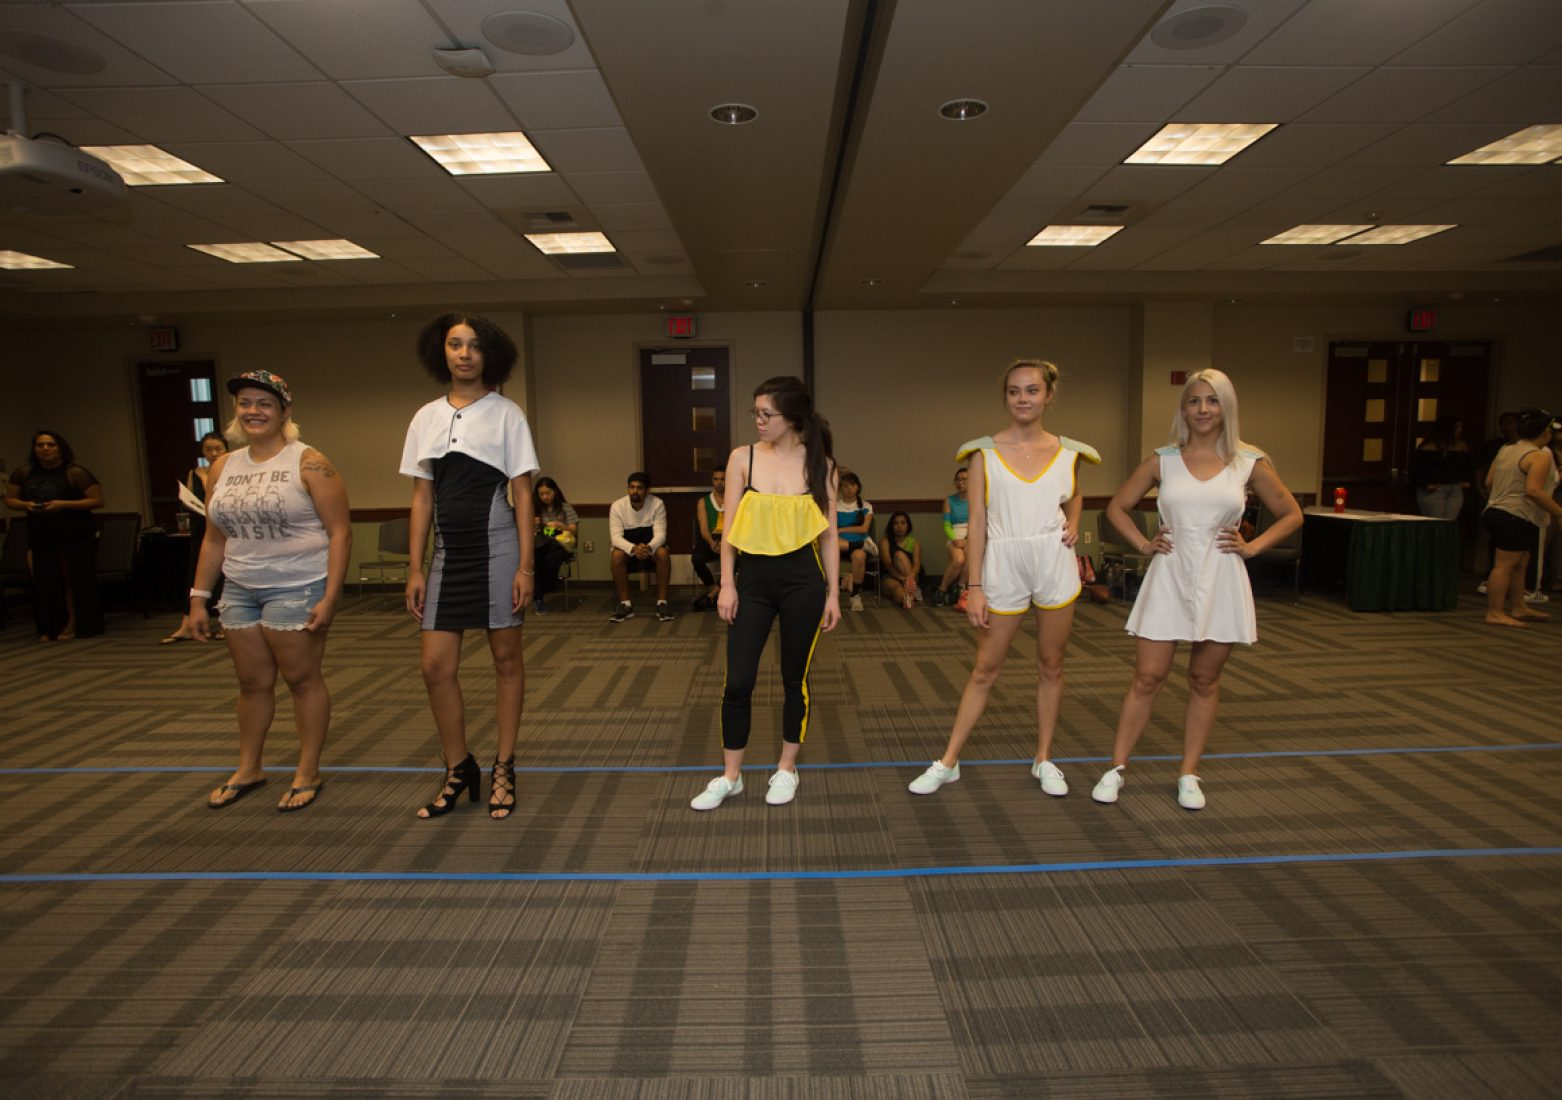 """Designer Alicia Tuatagaloa, far left, stands with three of her models who wear designs from her """"Touchback"""" collection during rehearsal in the University Union Foothill Suite on Wednesday. (Photo by Nicole Fowler)"""